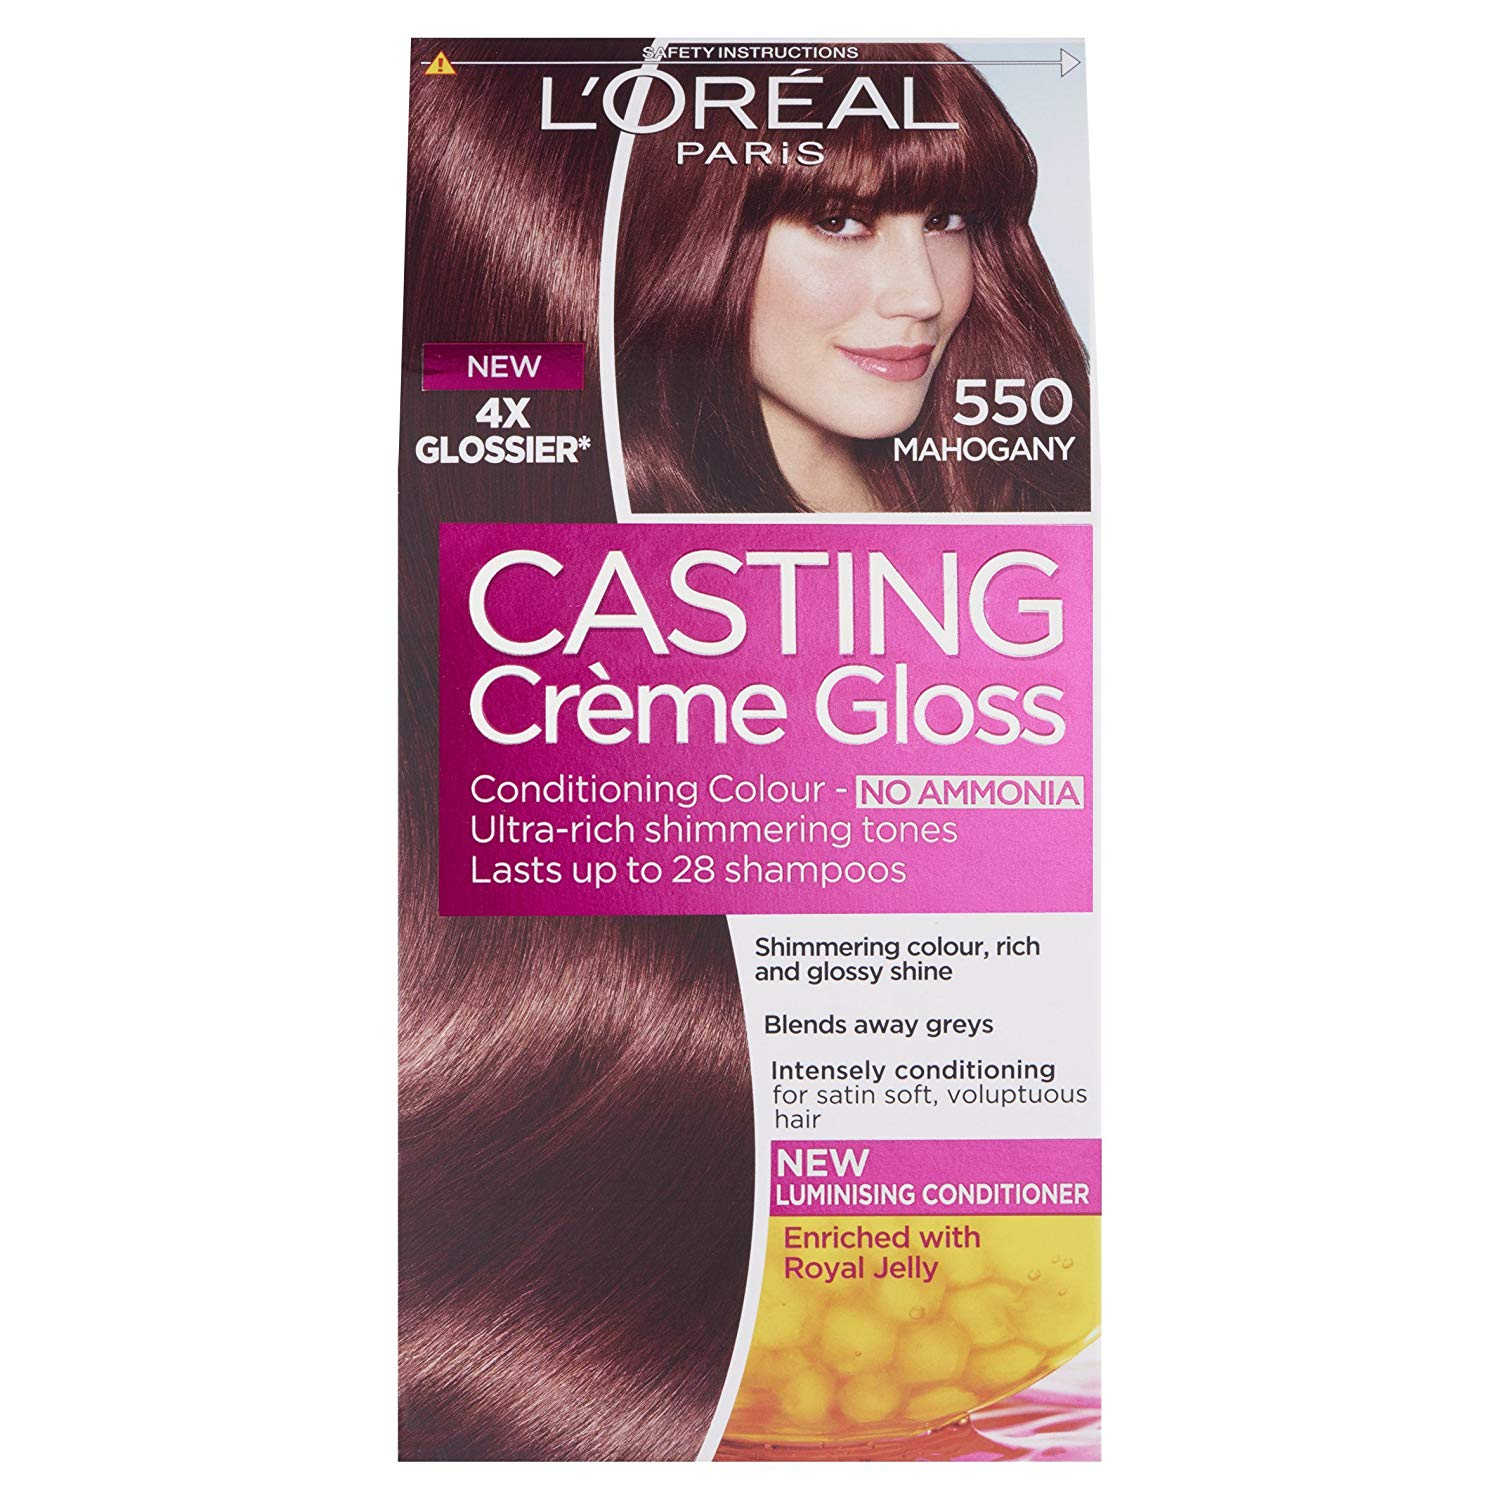 Loral Casting Creme Gloss Hair Colour Mahogany Number 550 Pack